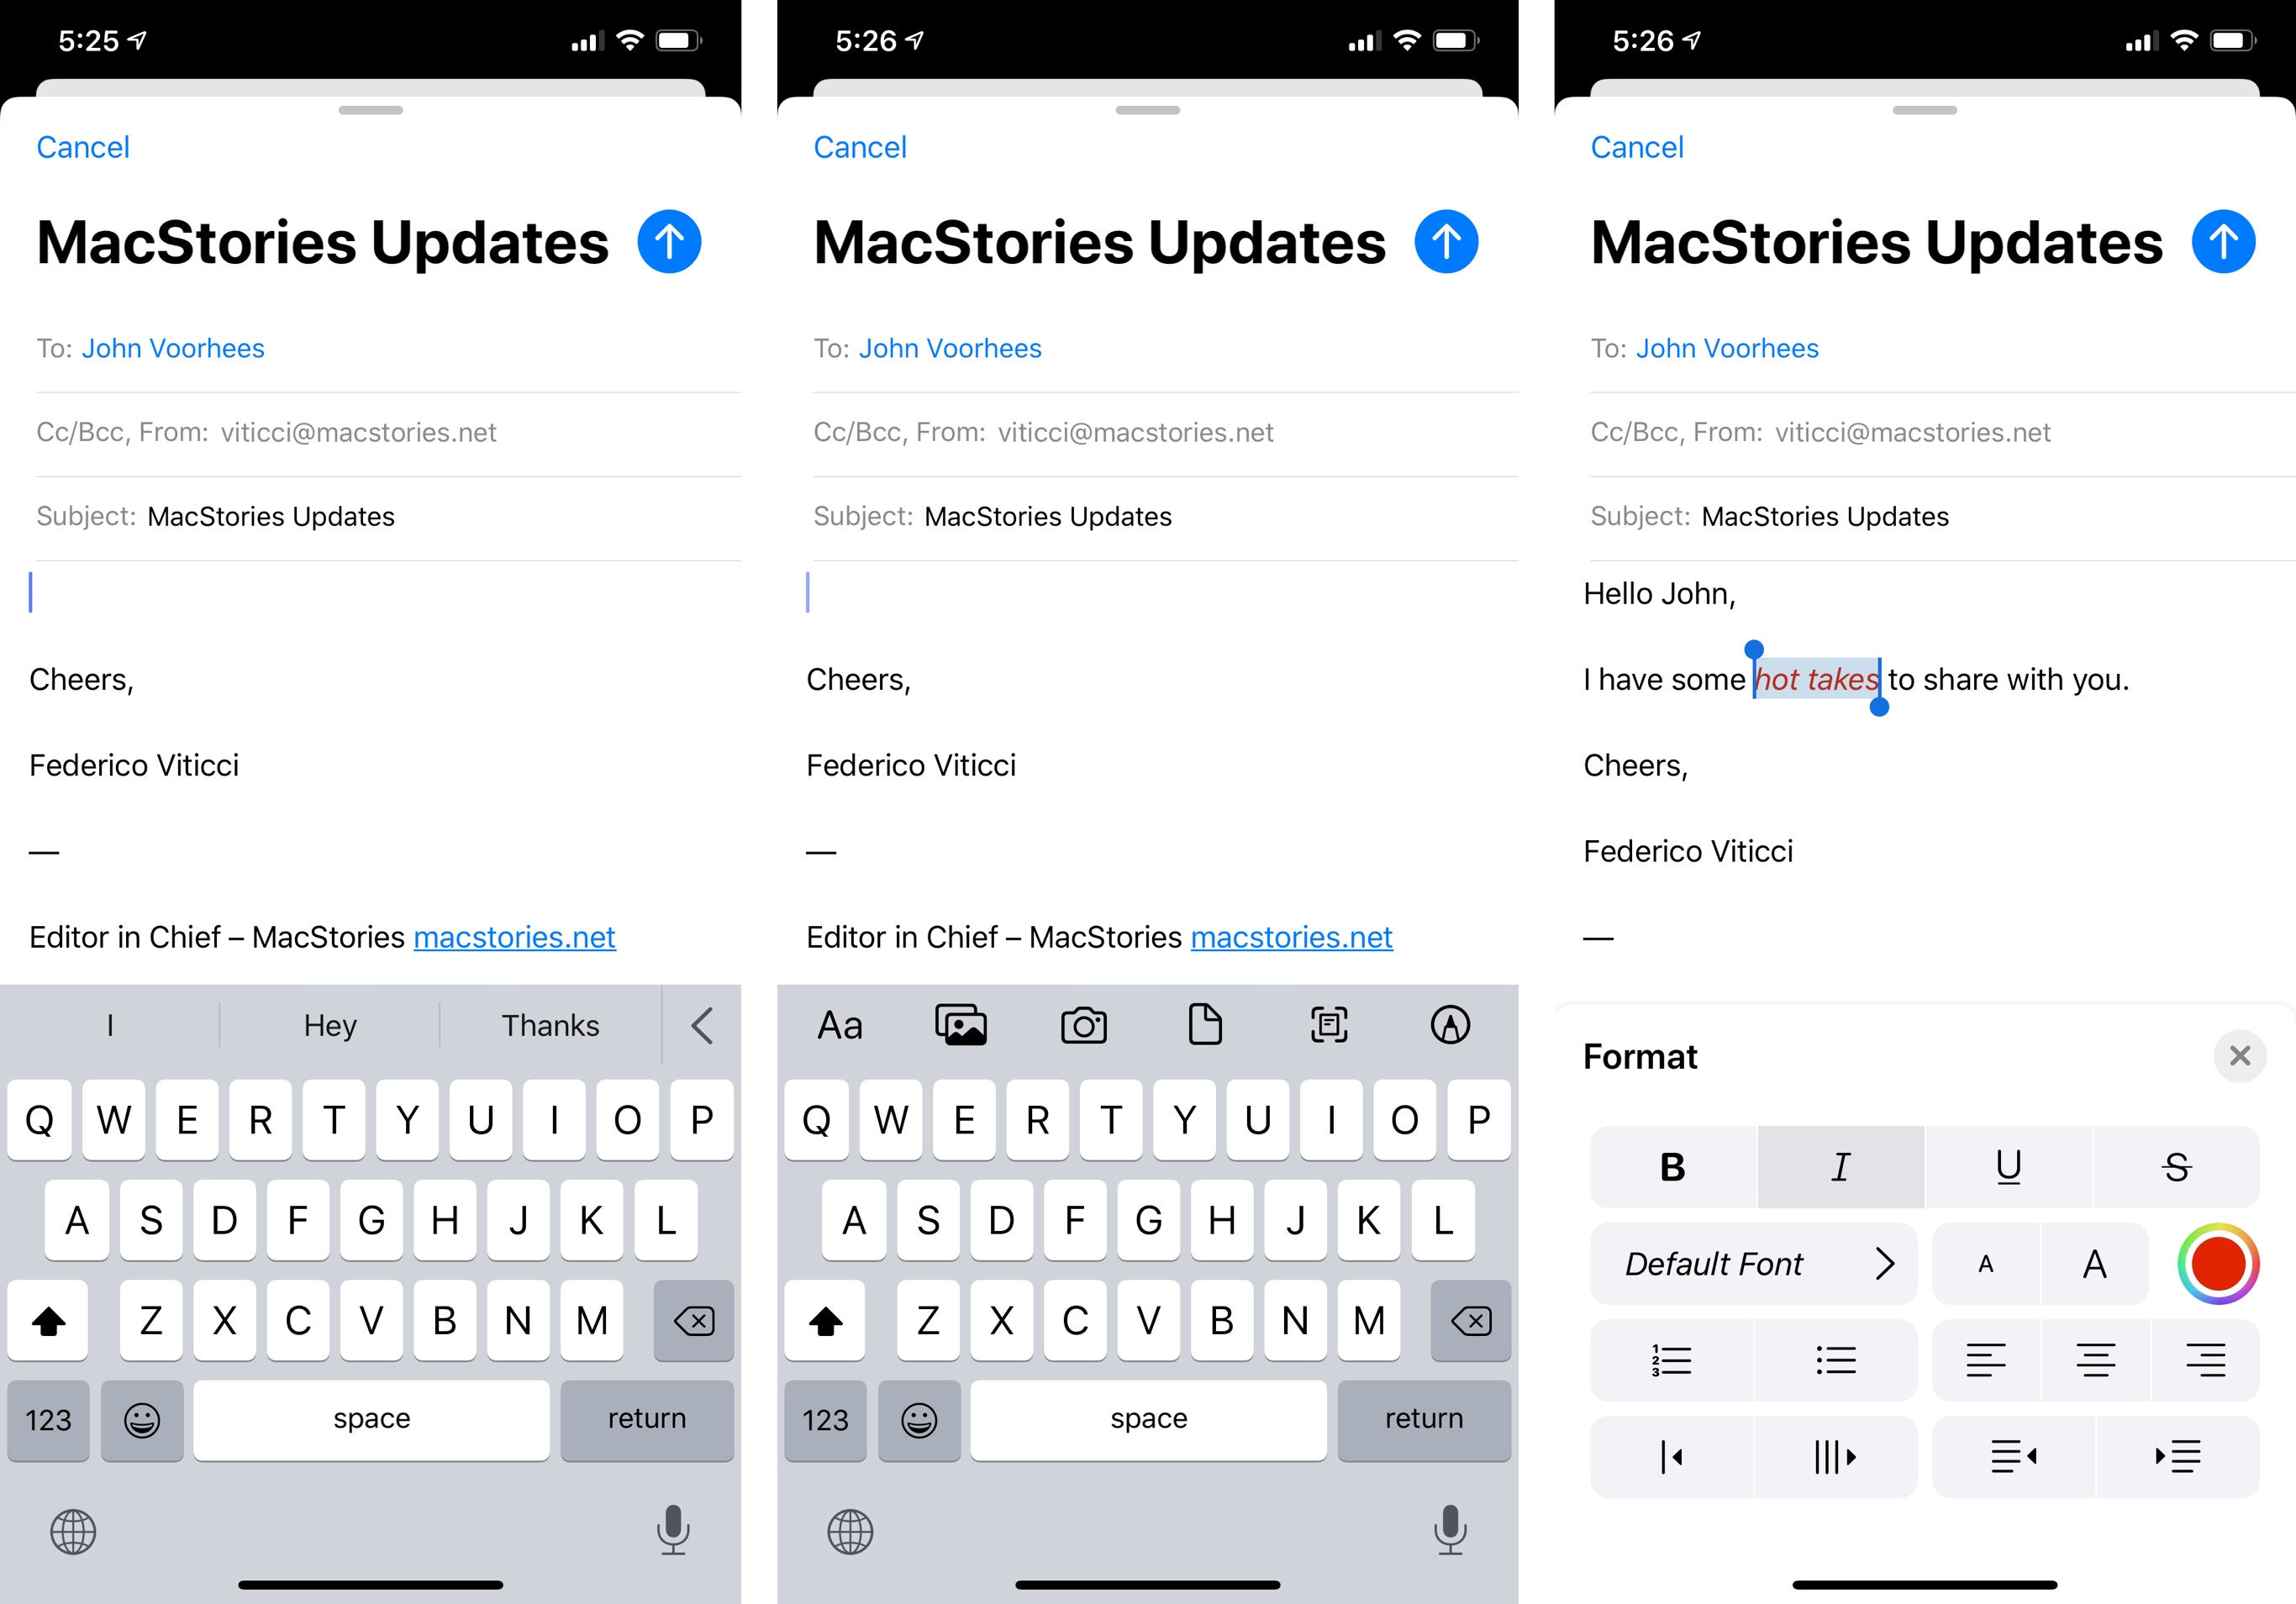 The new toolbar and formatting controls in iOS 13.